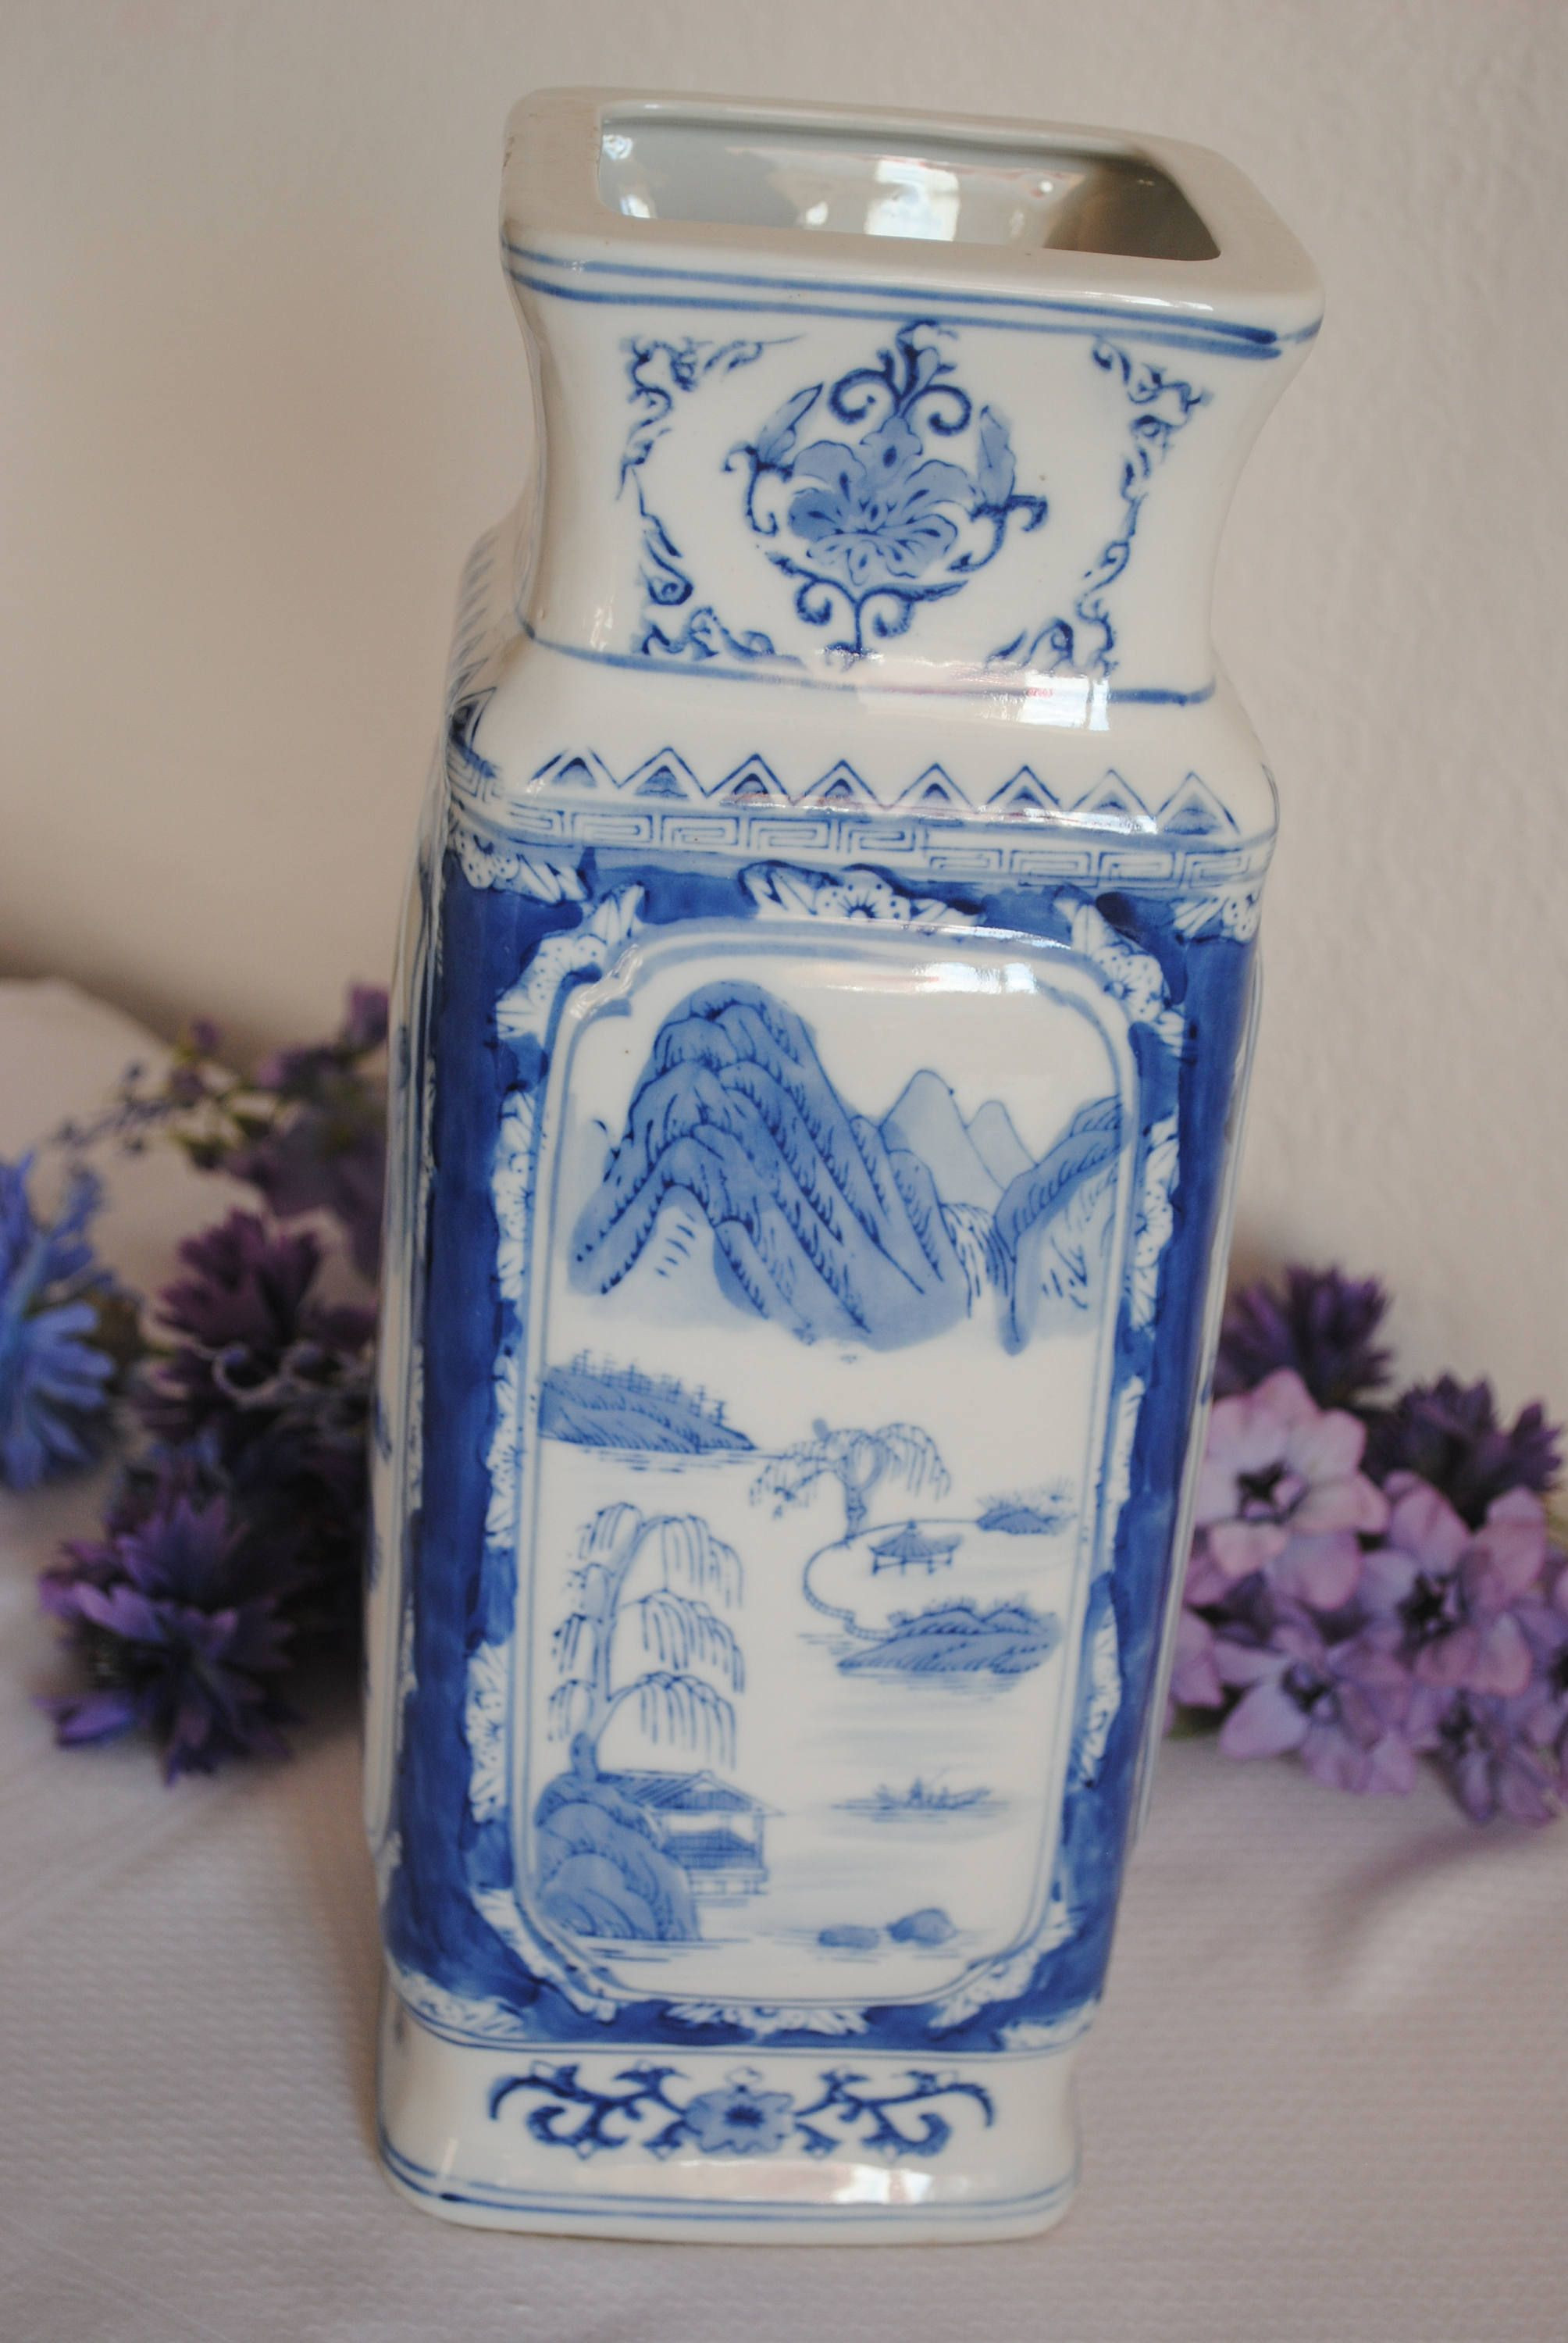 Asian Vases for Sale Of Blue Square Vase Photos where to Buy Wedding Decorations Pertaining to Blue Square Vase Gallery Chinese Vase Blue White Vase Unusual Square Vase oriental Of Blue